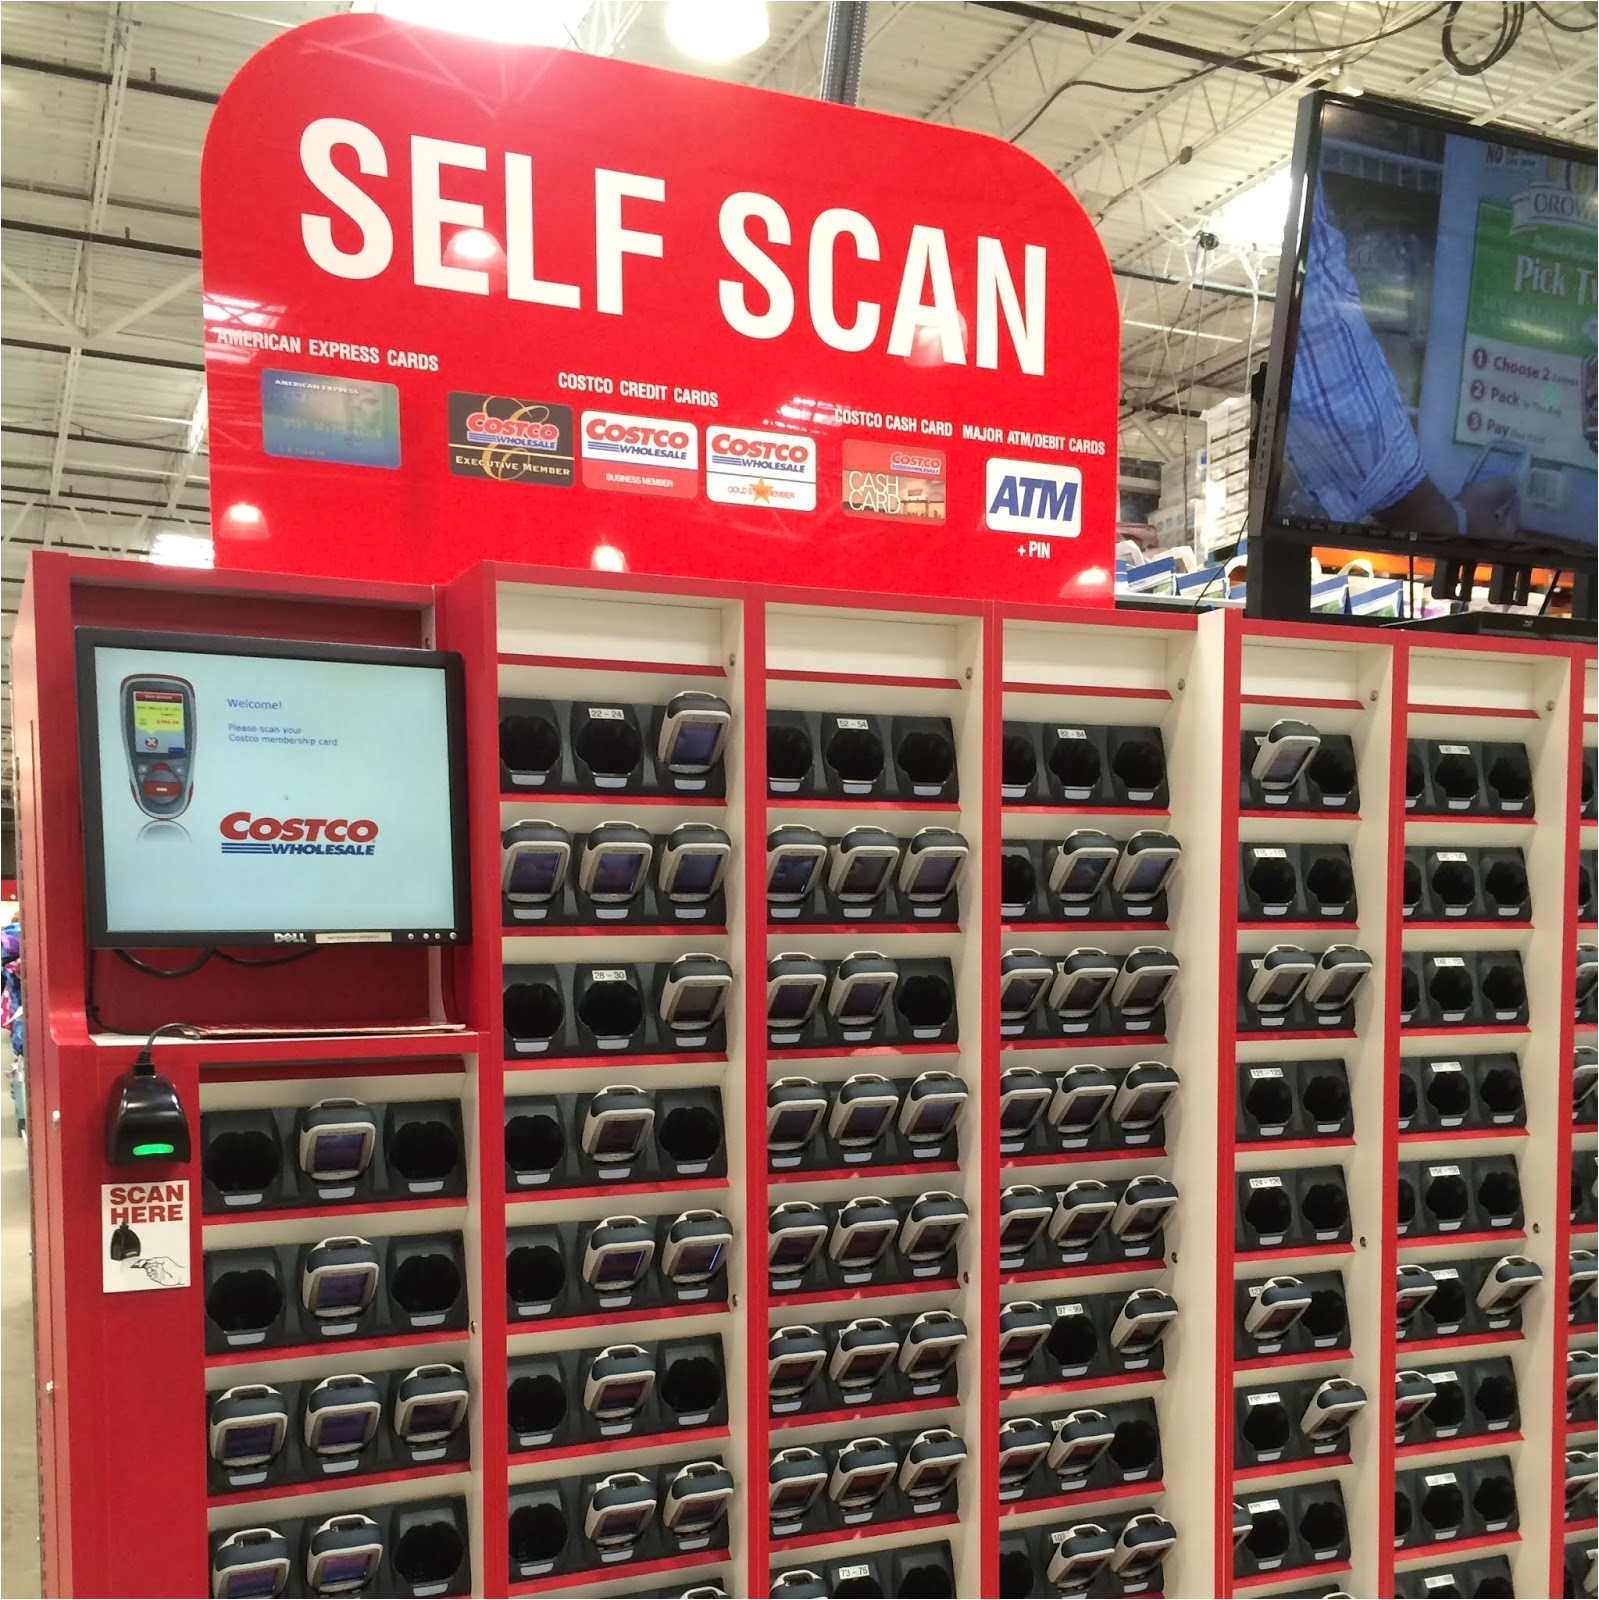 all of the carts were equipped with holsters for the scanner so they were readily accesaible while you shopped